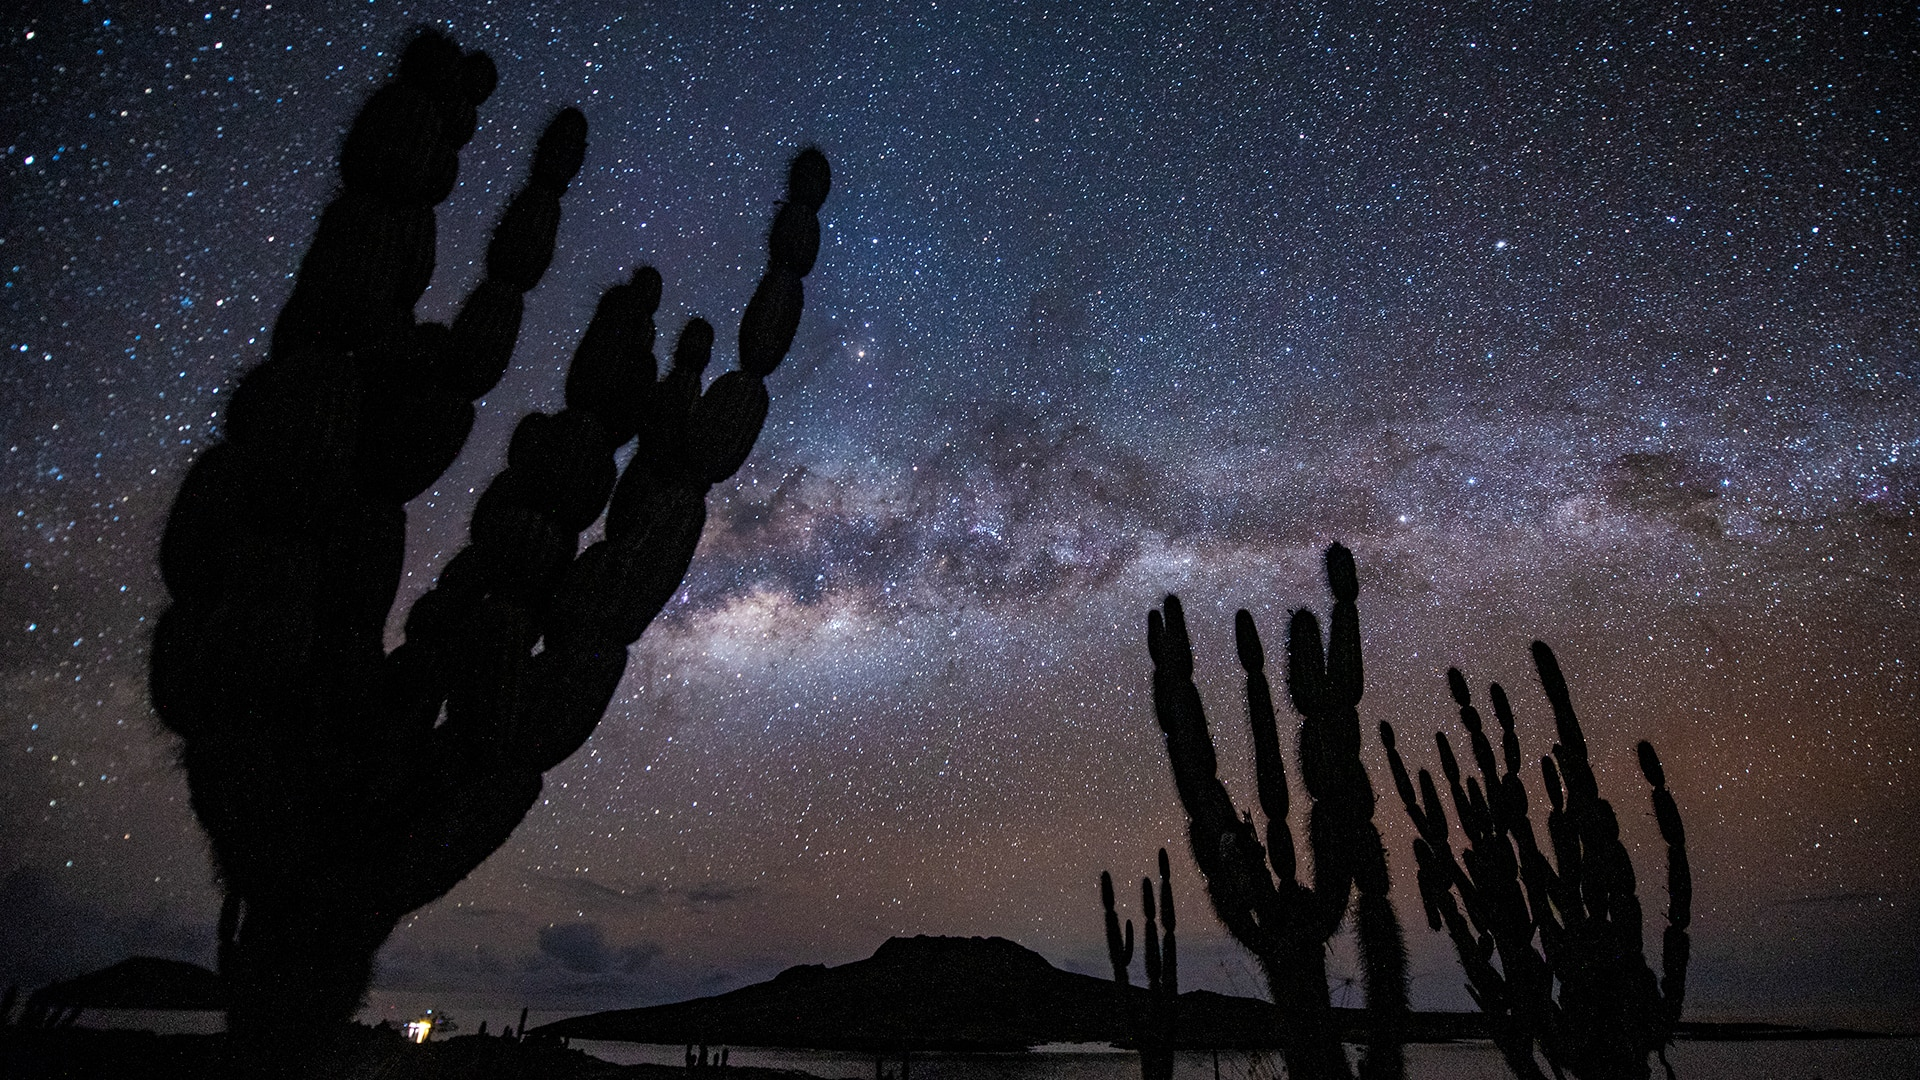 Candelabra cactus with the starry sky in the background